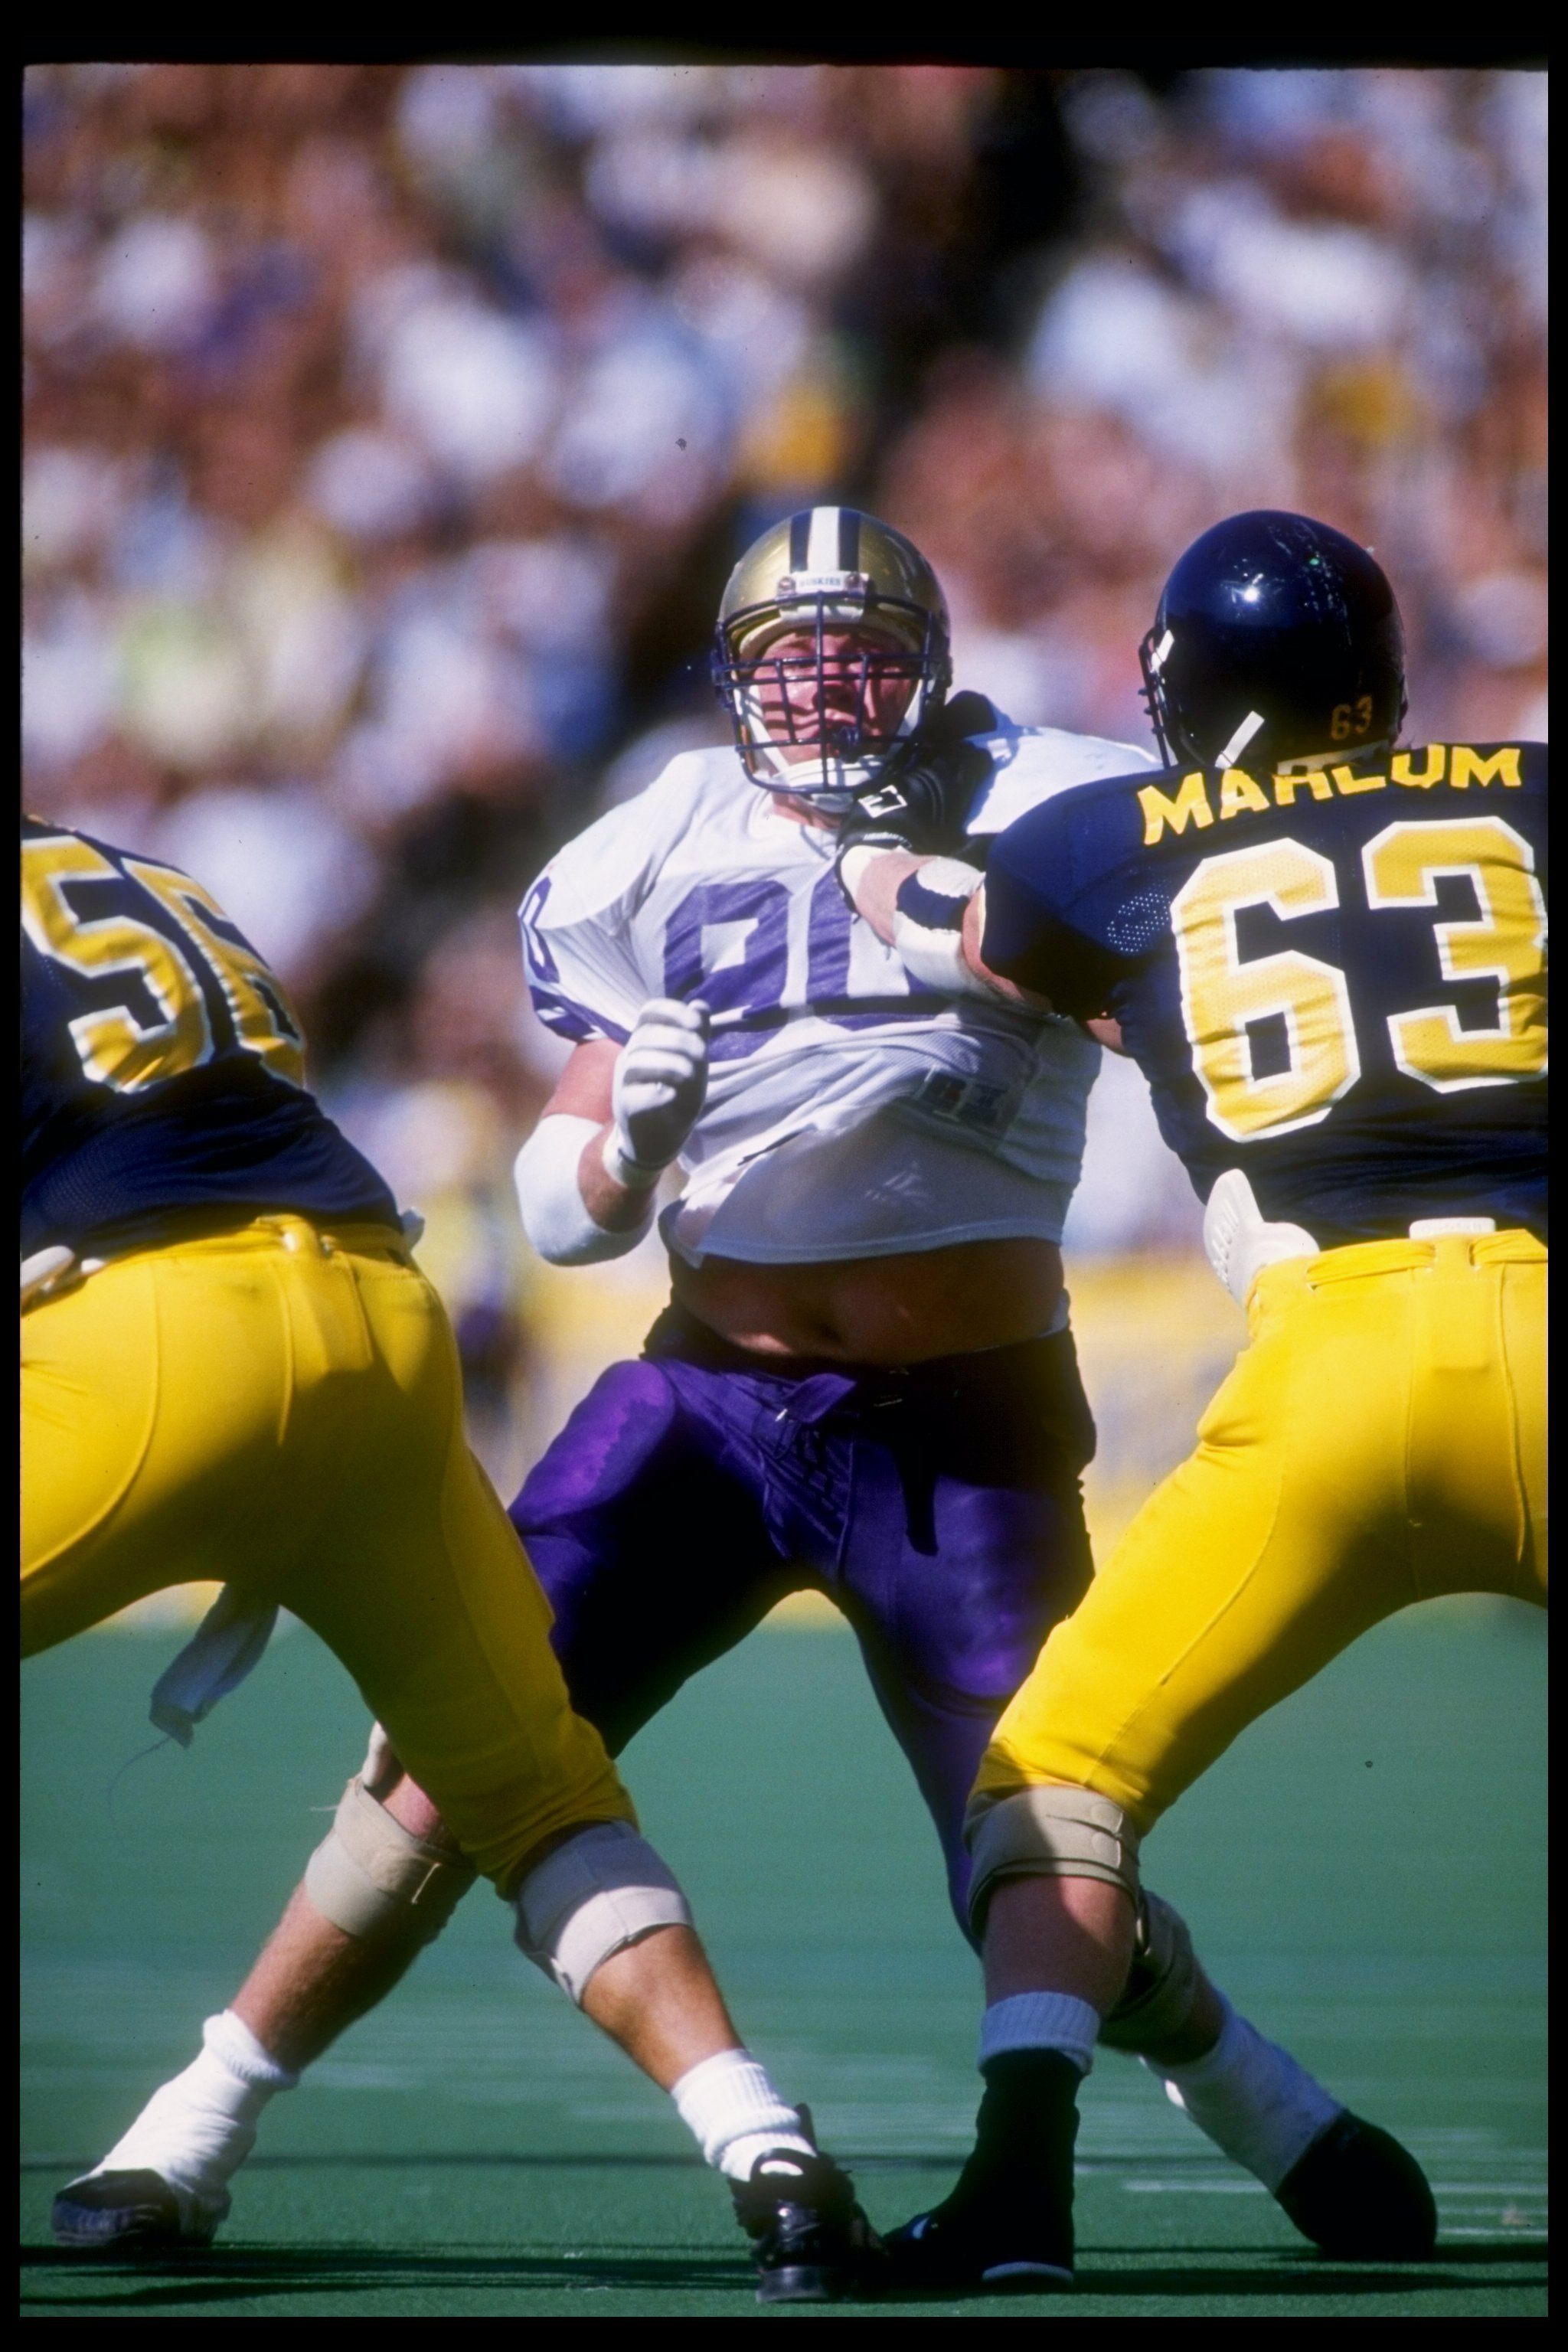 19 Oct 1991: Defensive tackle Steve Emtman of the Washington Huskies tries to break through the offensive line of the California Bears during a game at Memorial Stadium in Berkeley, California. Washington won the game 24-17.